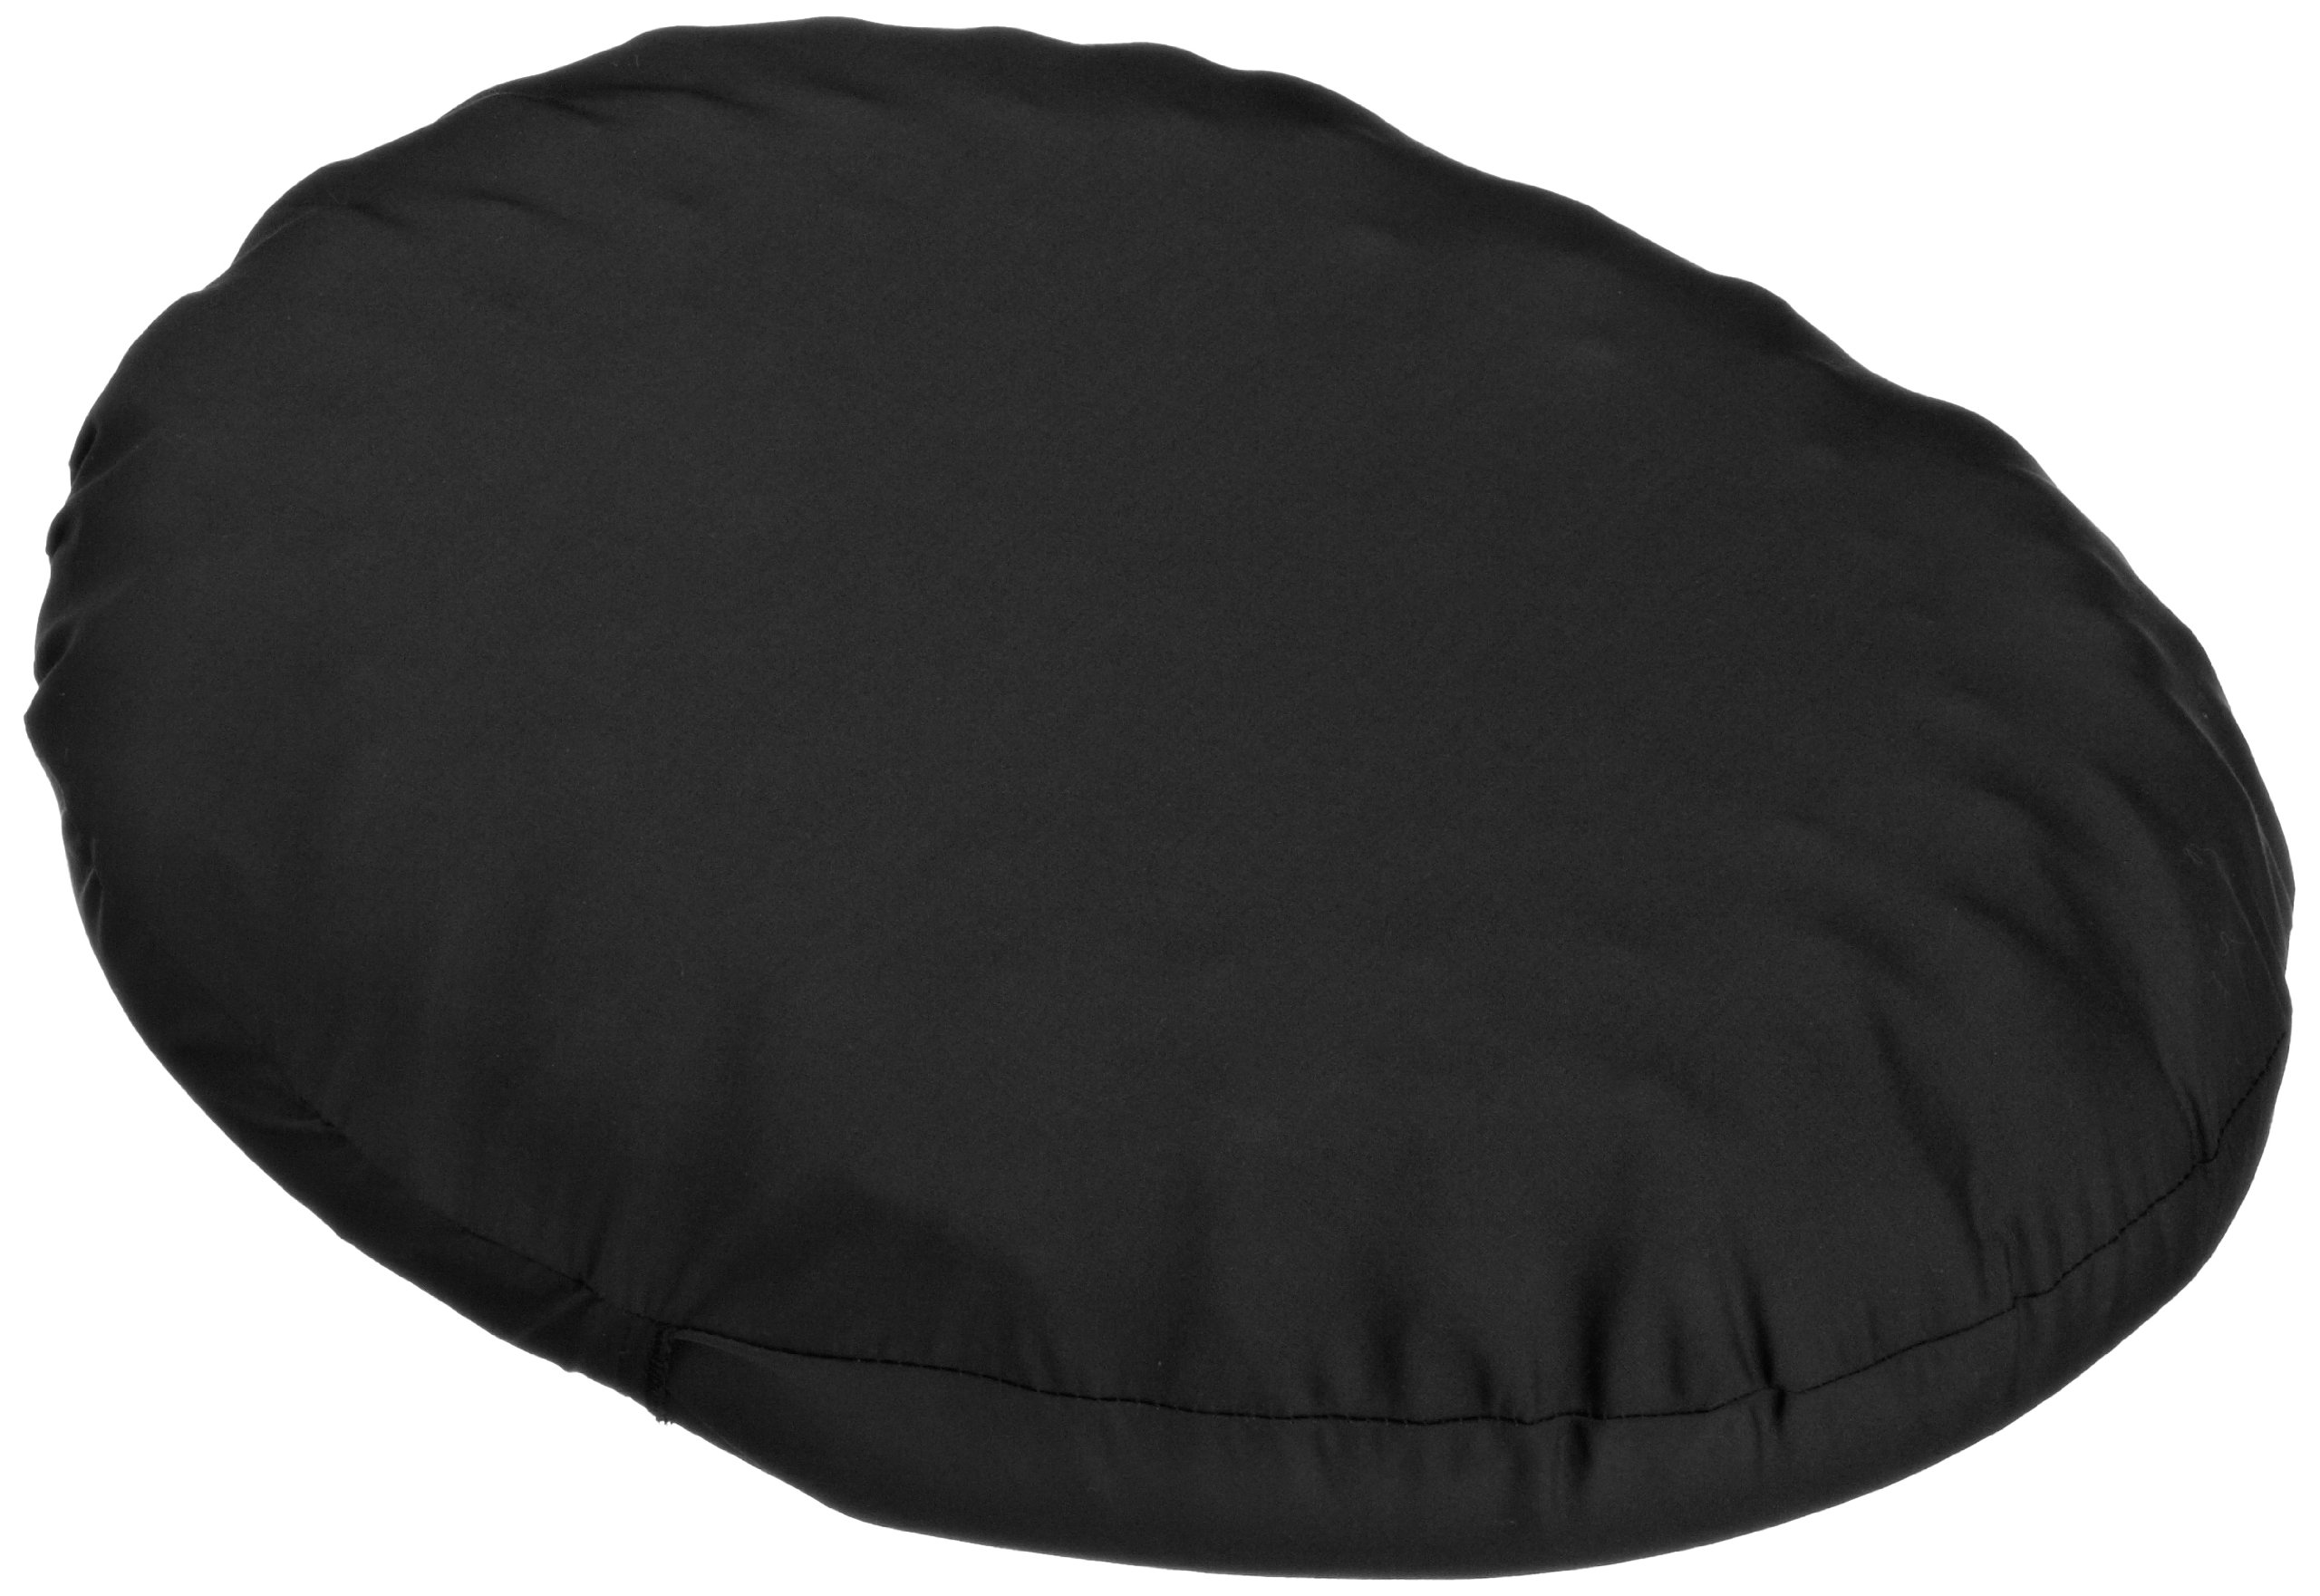 Hermell Products Convoluted Comfort Ring/Cushion with Black Fabric